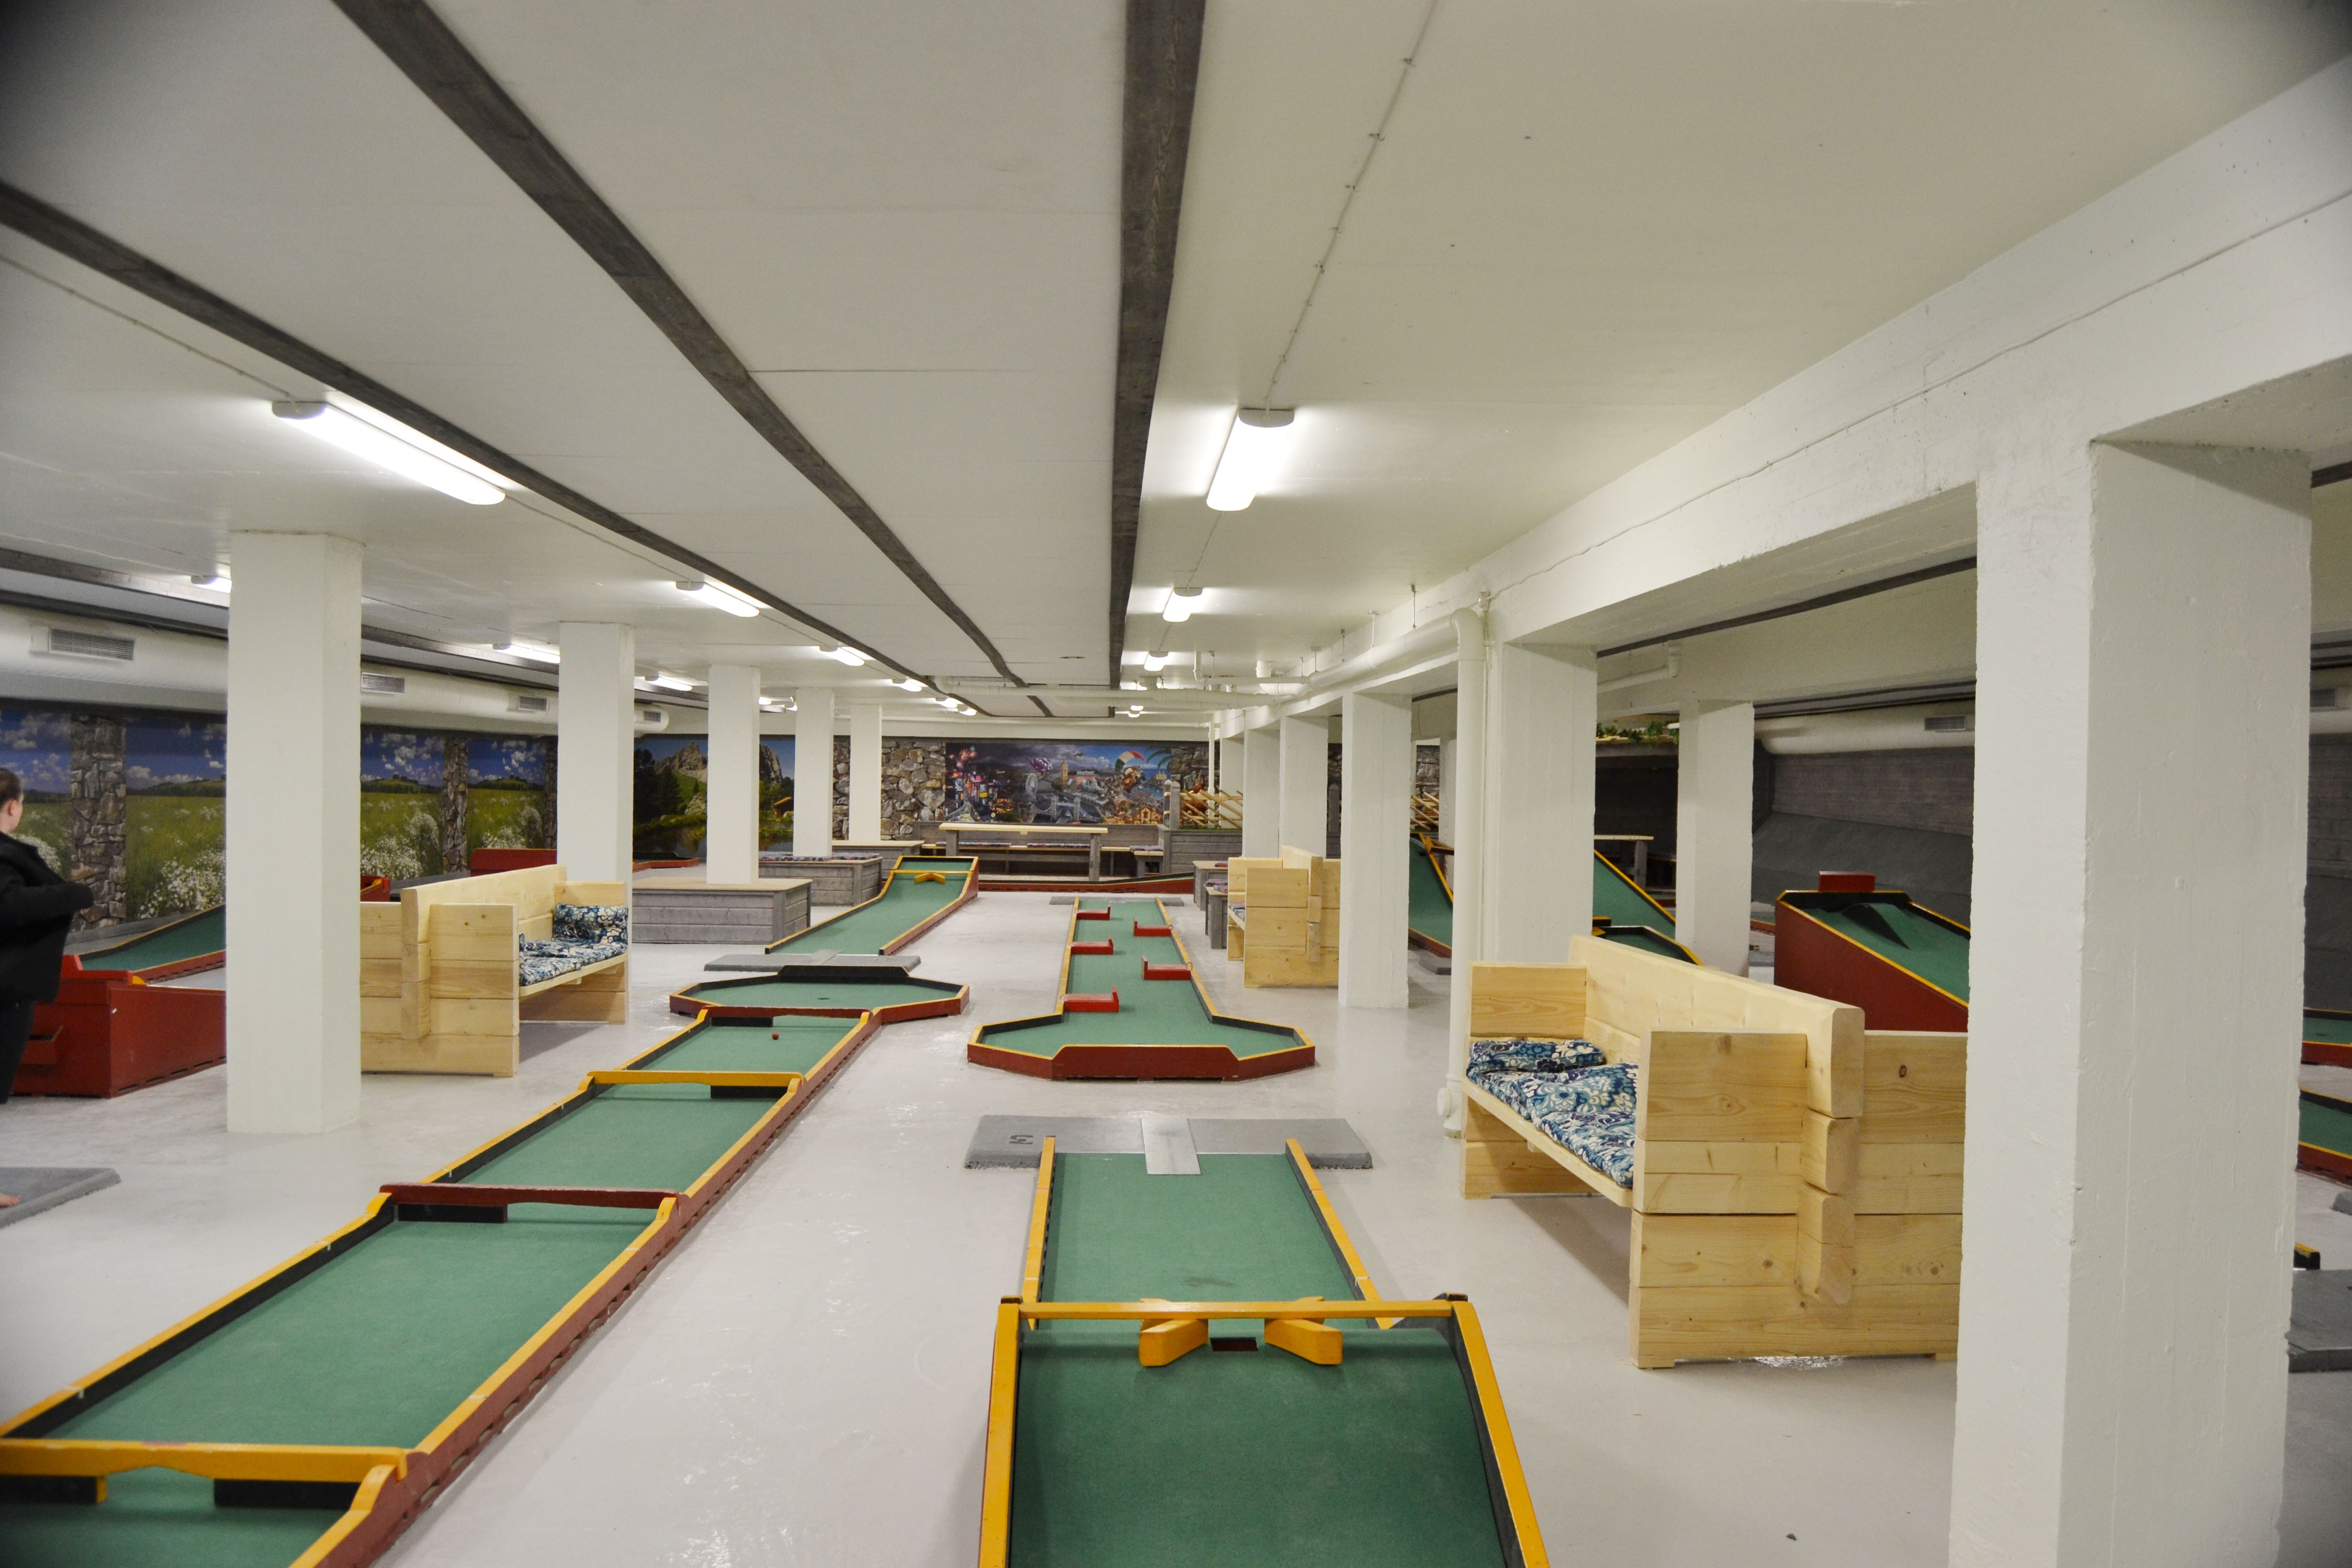 Miniature-golf (indoors)